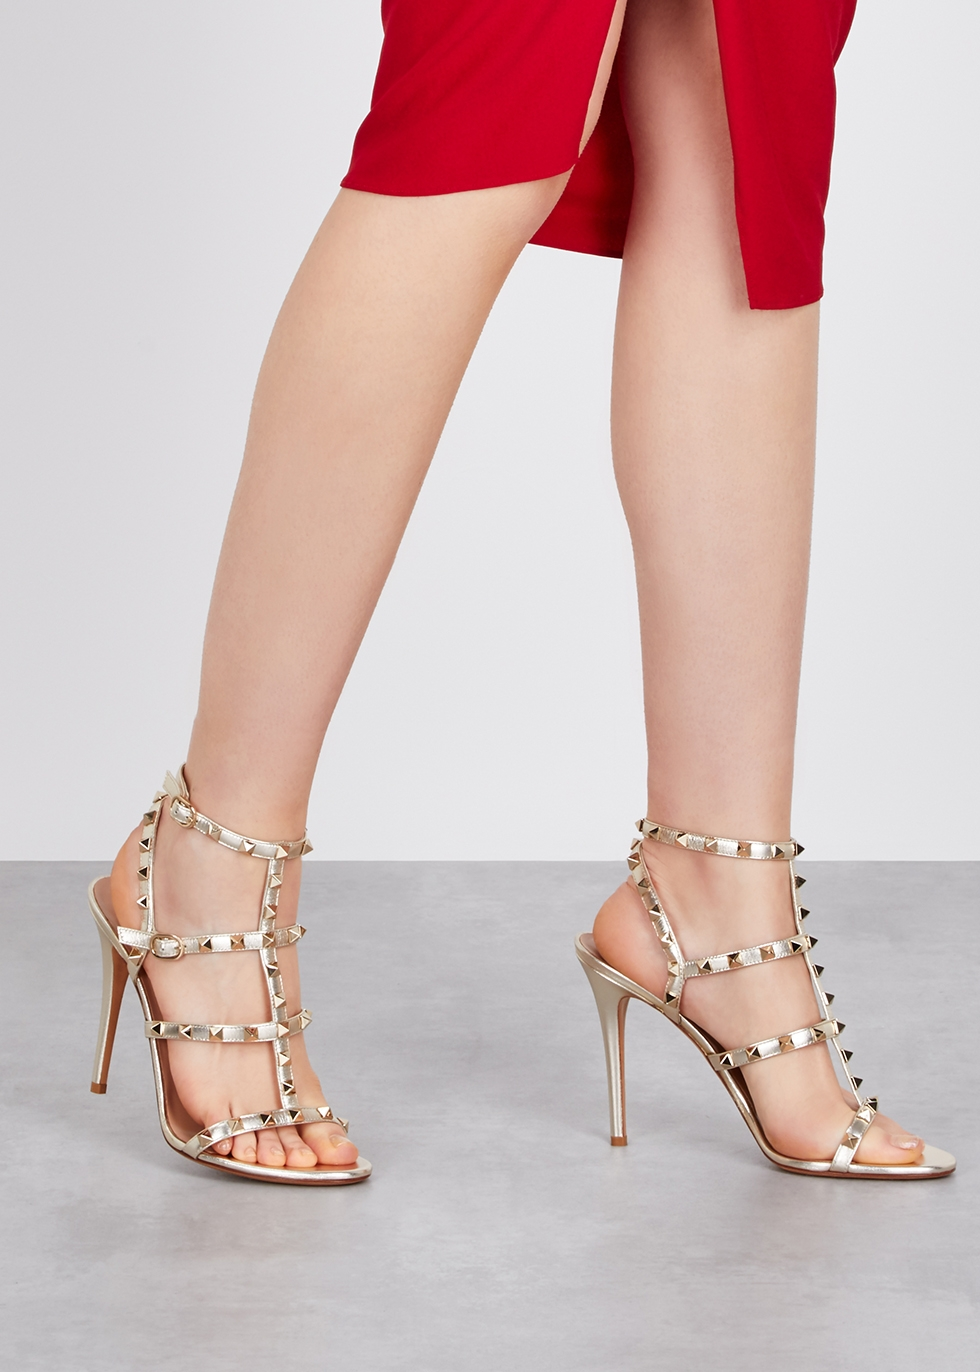 2f5d2c8ee55 Valentino Garavani Rockstud 105 gold leather sandals - Harvey Nichols